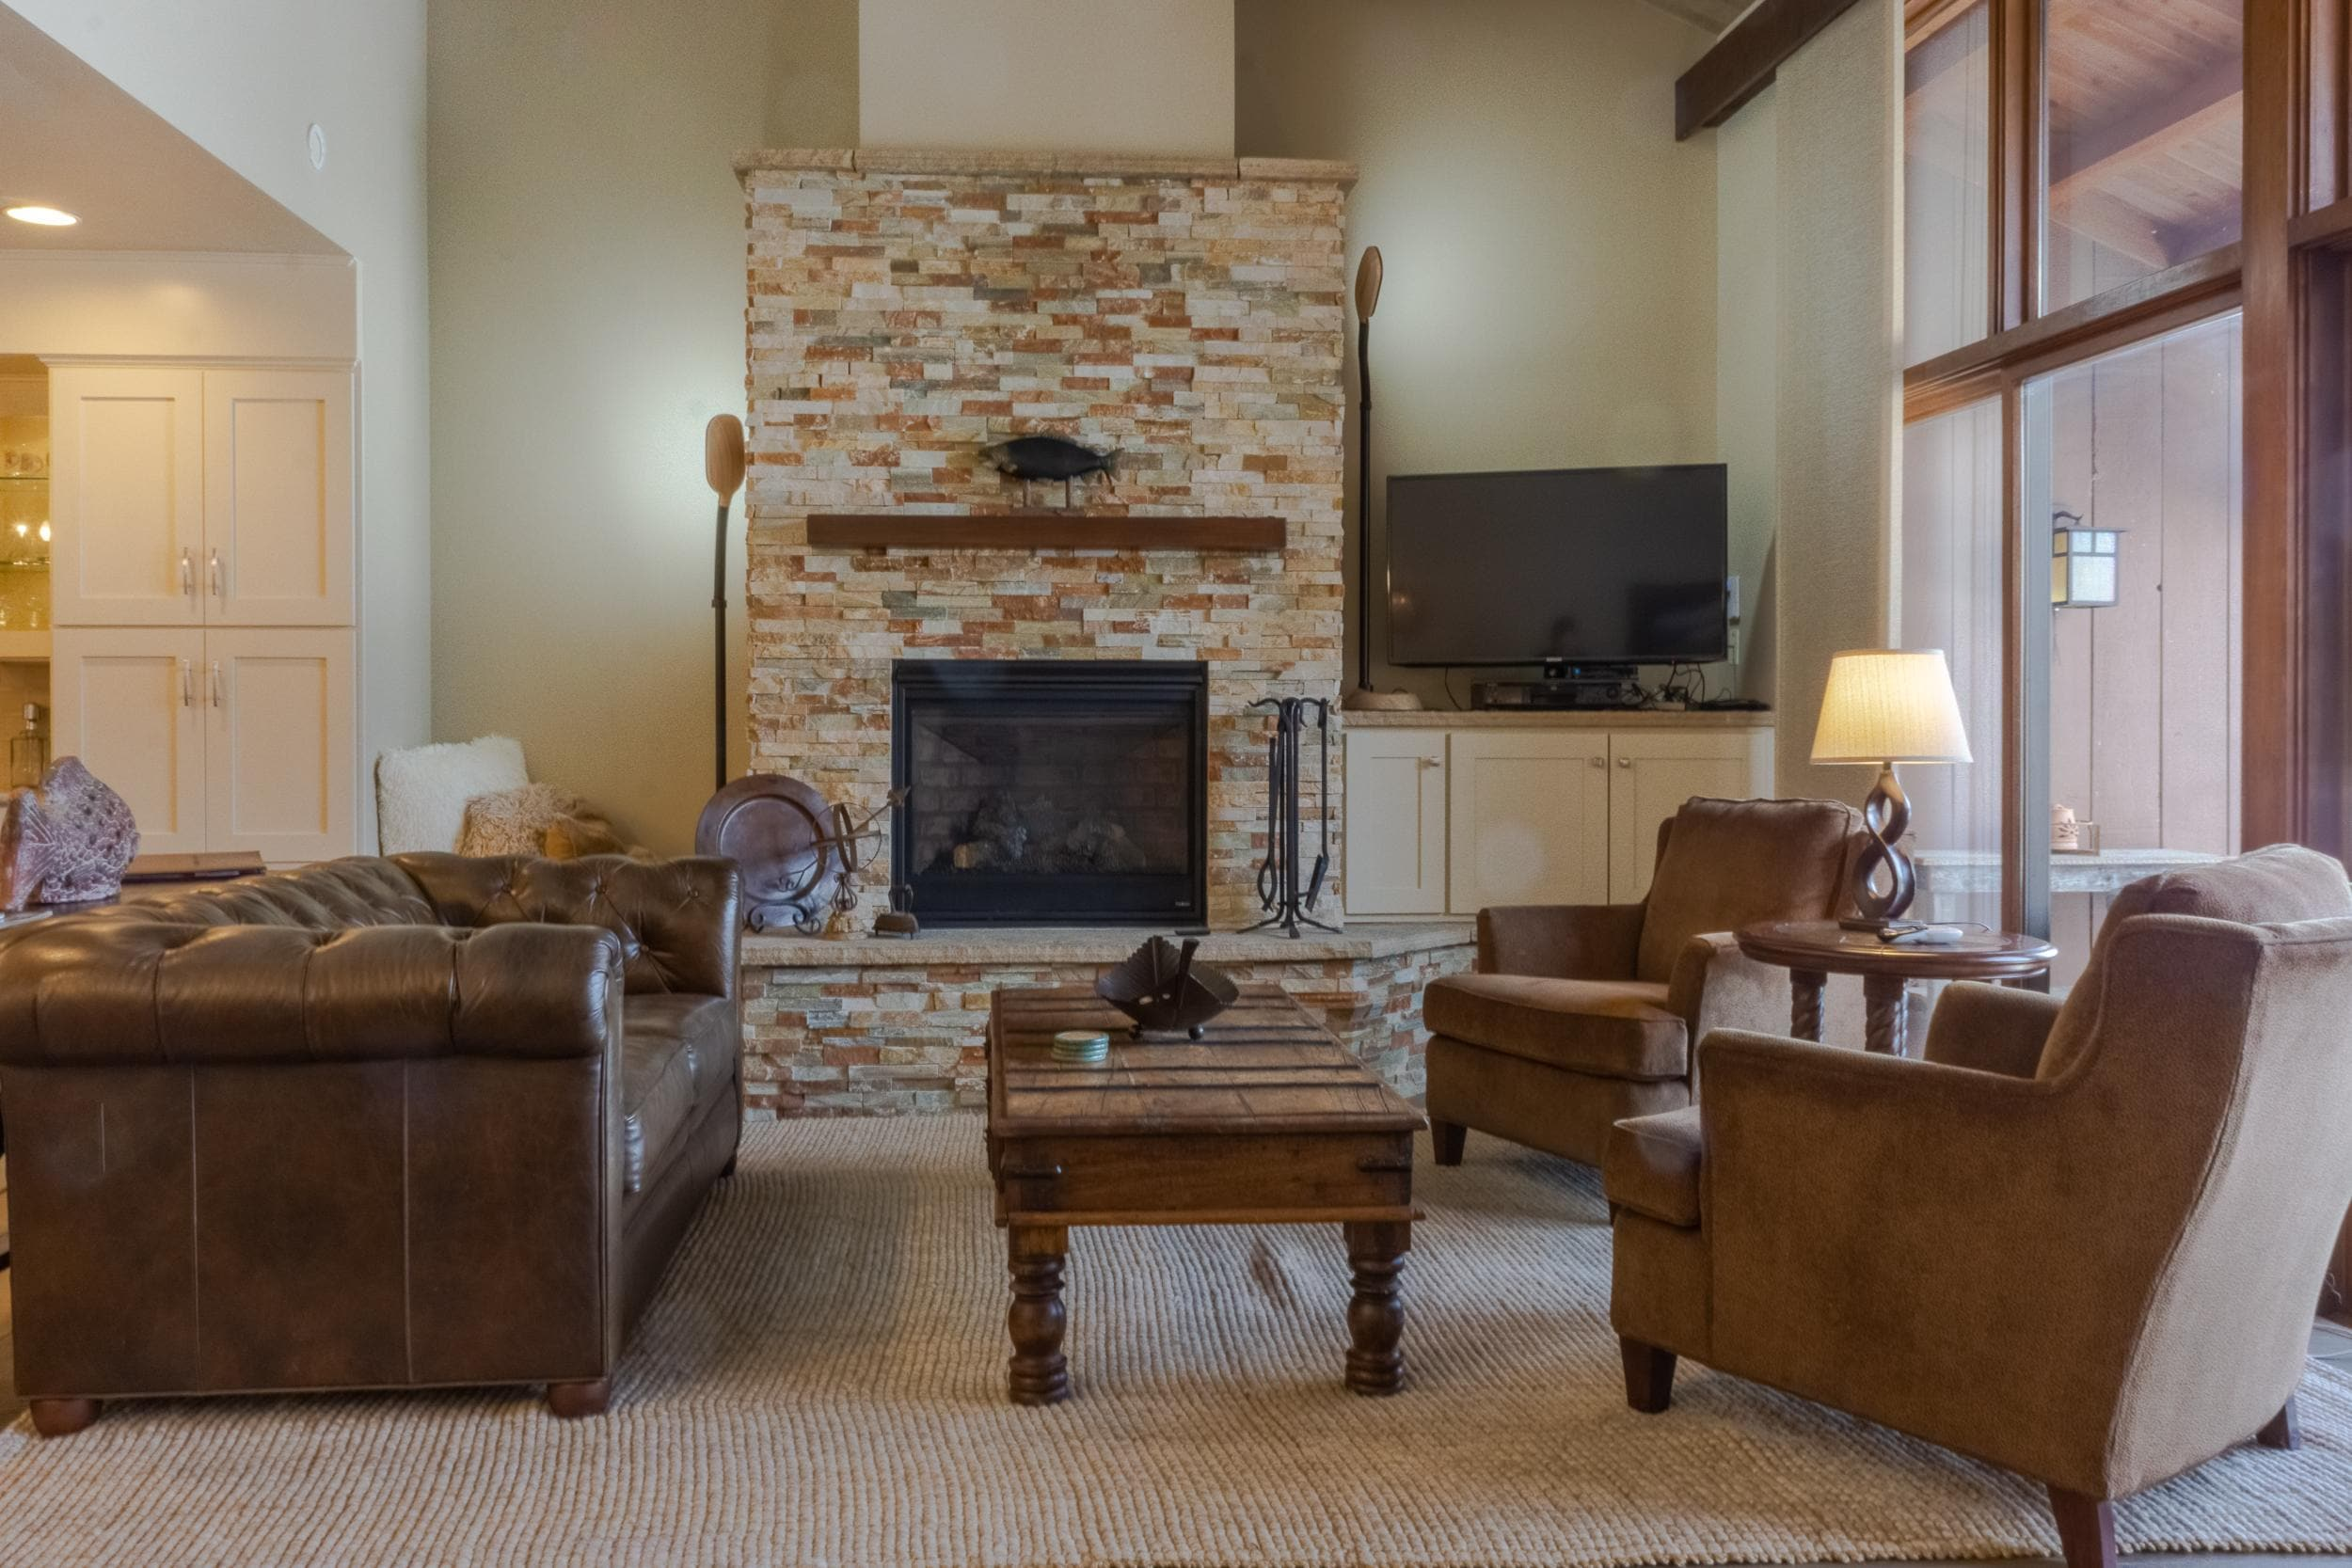 Townhome at Tamarron Resort - On Golf Course - AC/Pool/Hot Tub - Ski Shuttle